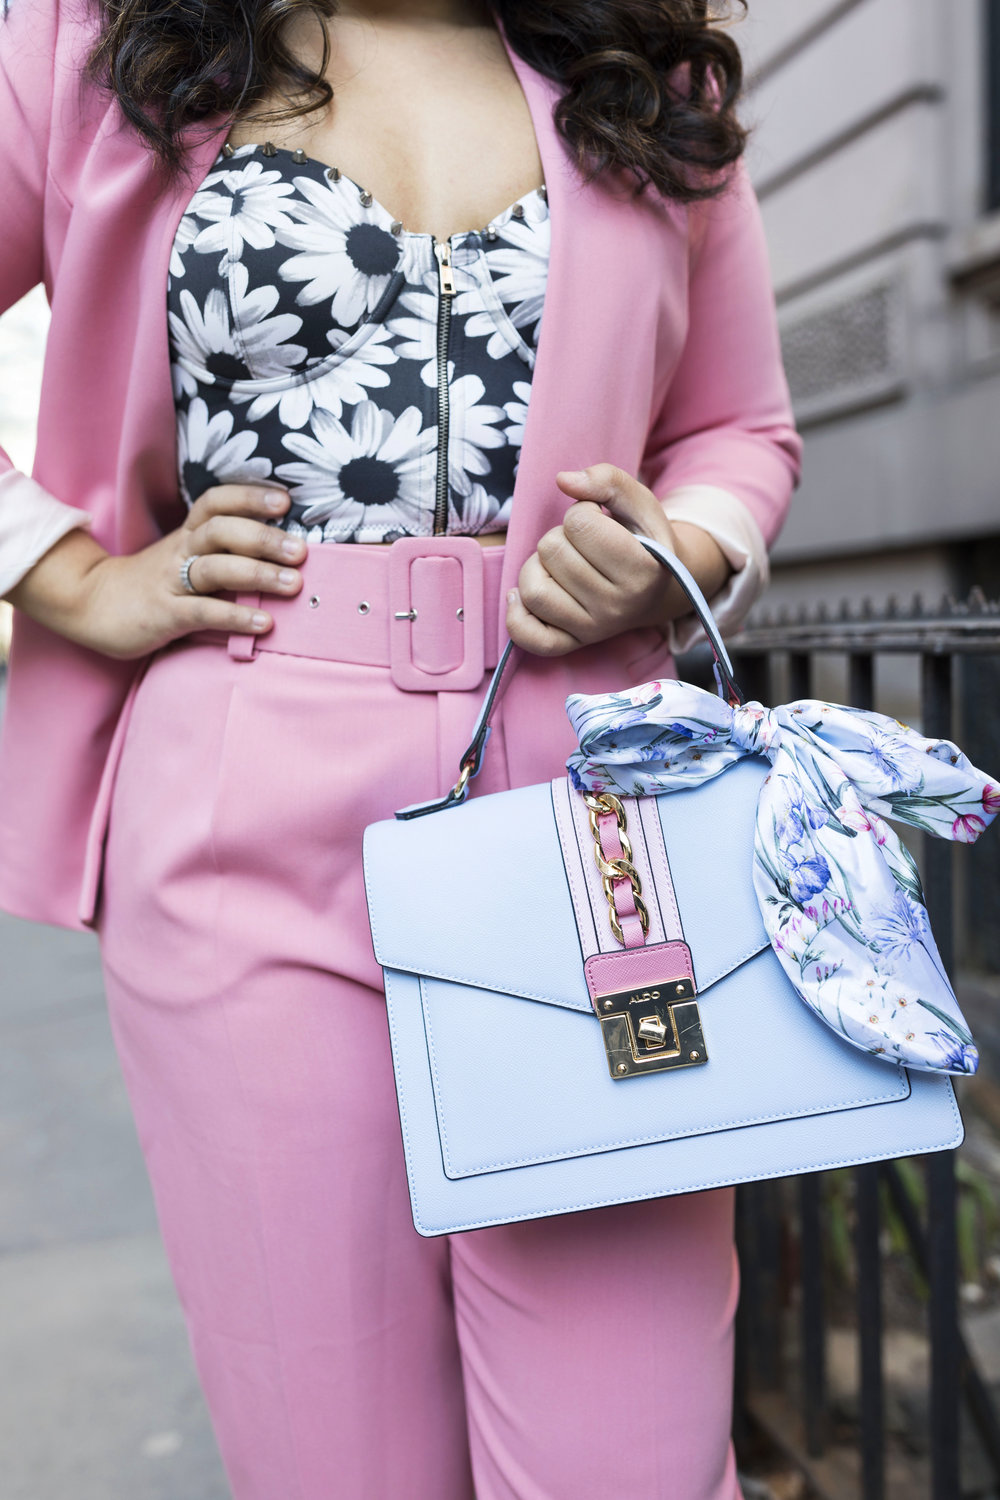 Pant Suit Spring Outfit Trend- Pink Blazer and Pink Pants Aldo Bag